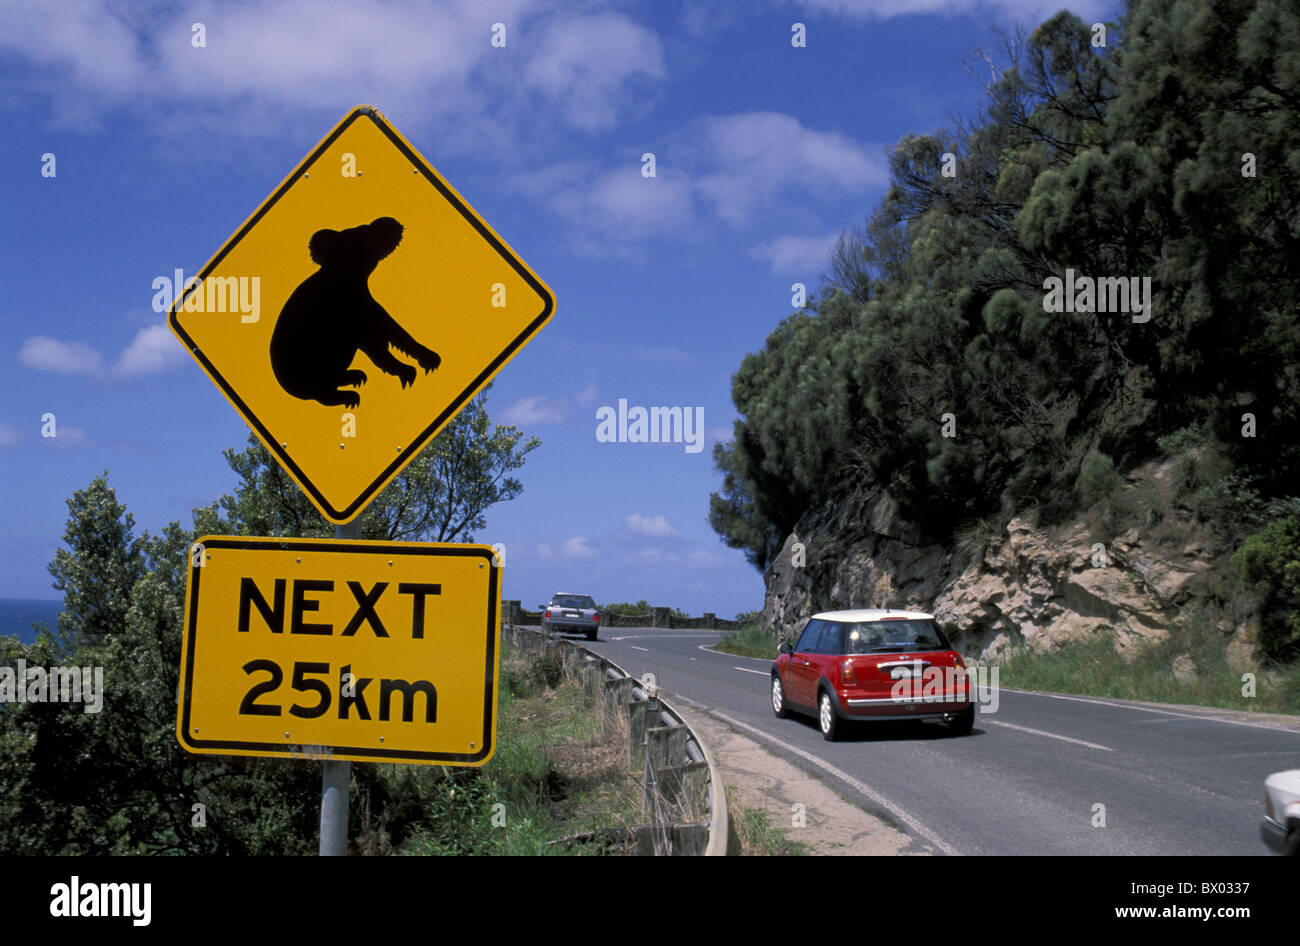 Australia Great Ocean Road Koala Mount Defiance Lookout Victoria street sign warning attention cars mount - Stock Image